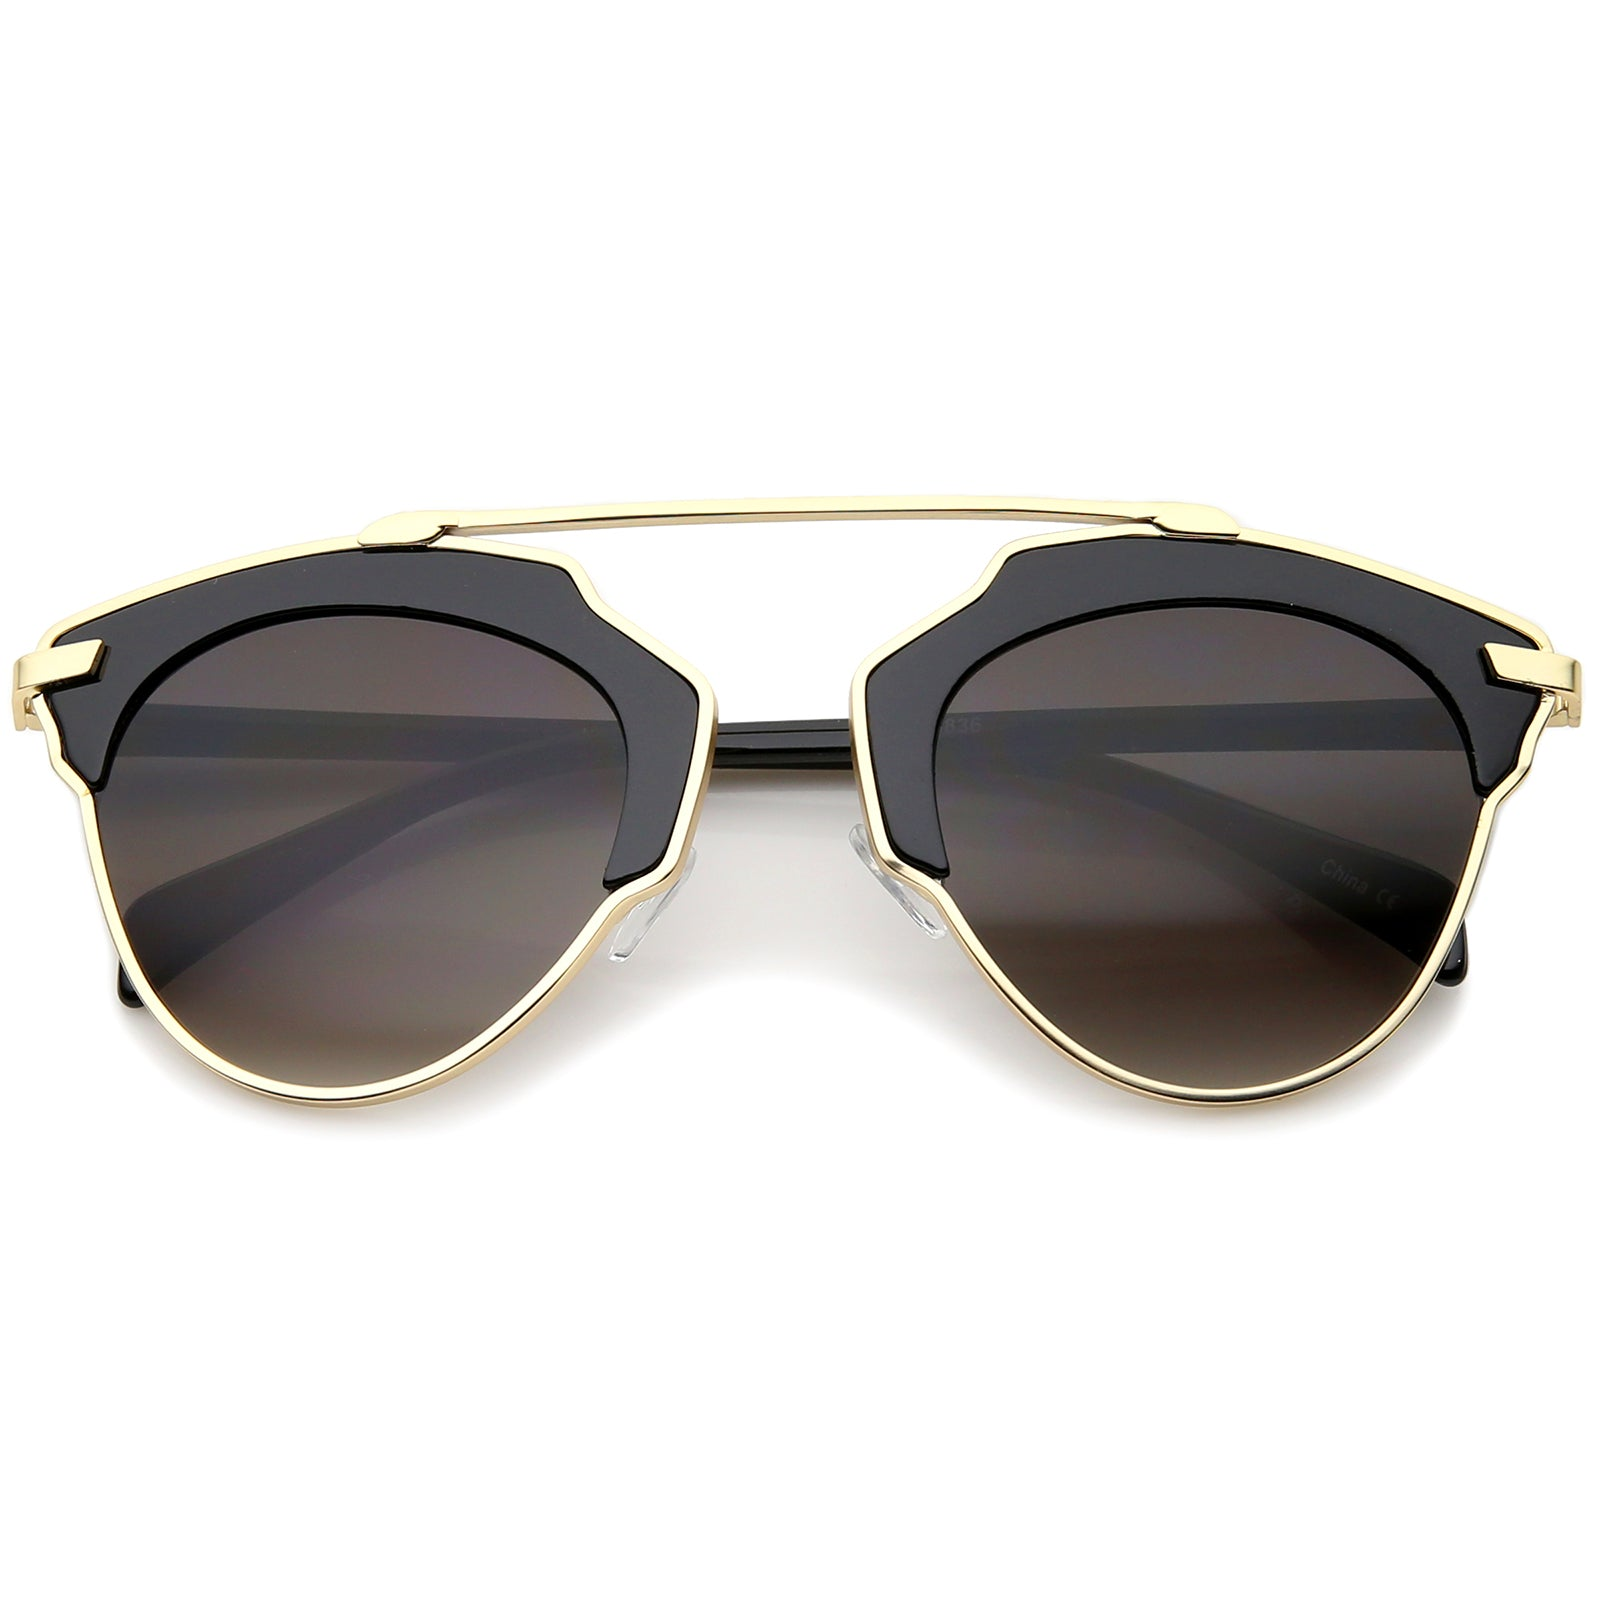 High Fashion Two-Toned Pantos Crossbar Tinted Lens Aviator Sunglasses 52mm - sunglass.la - 5